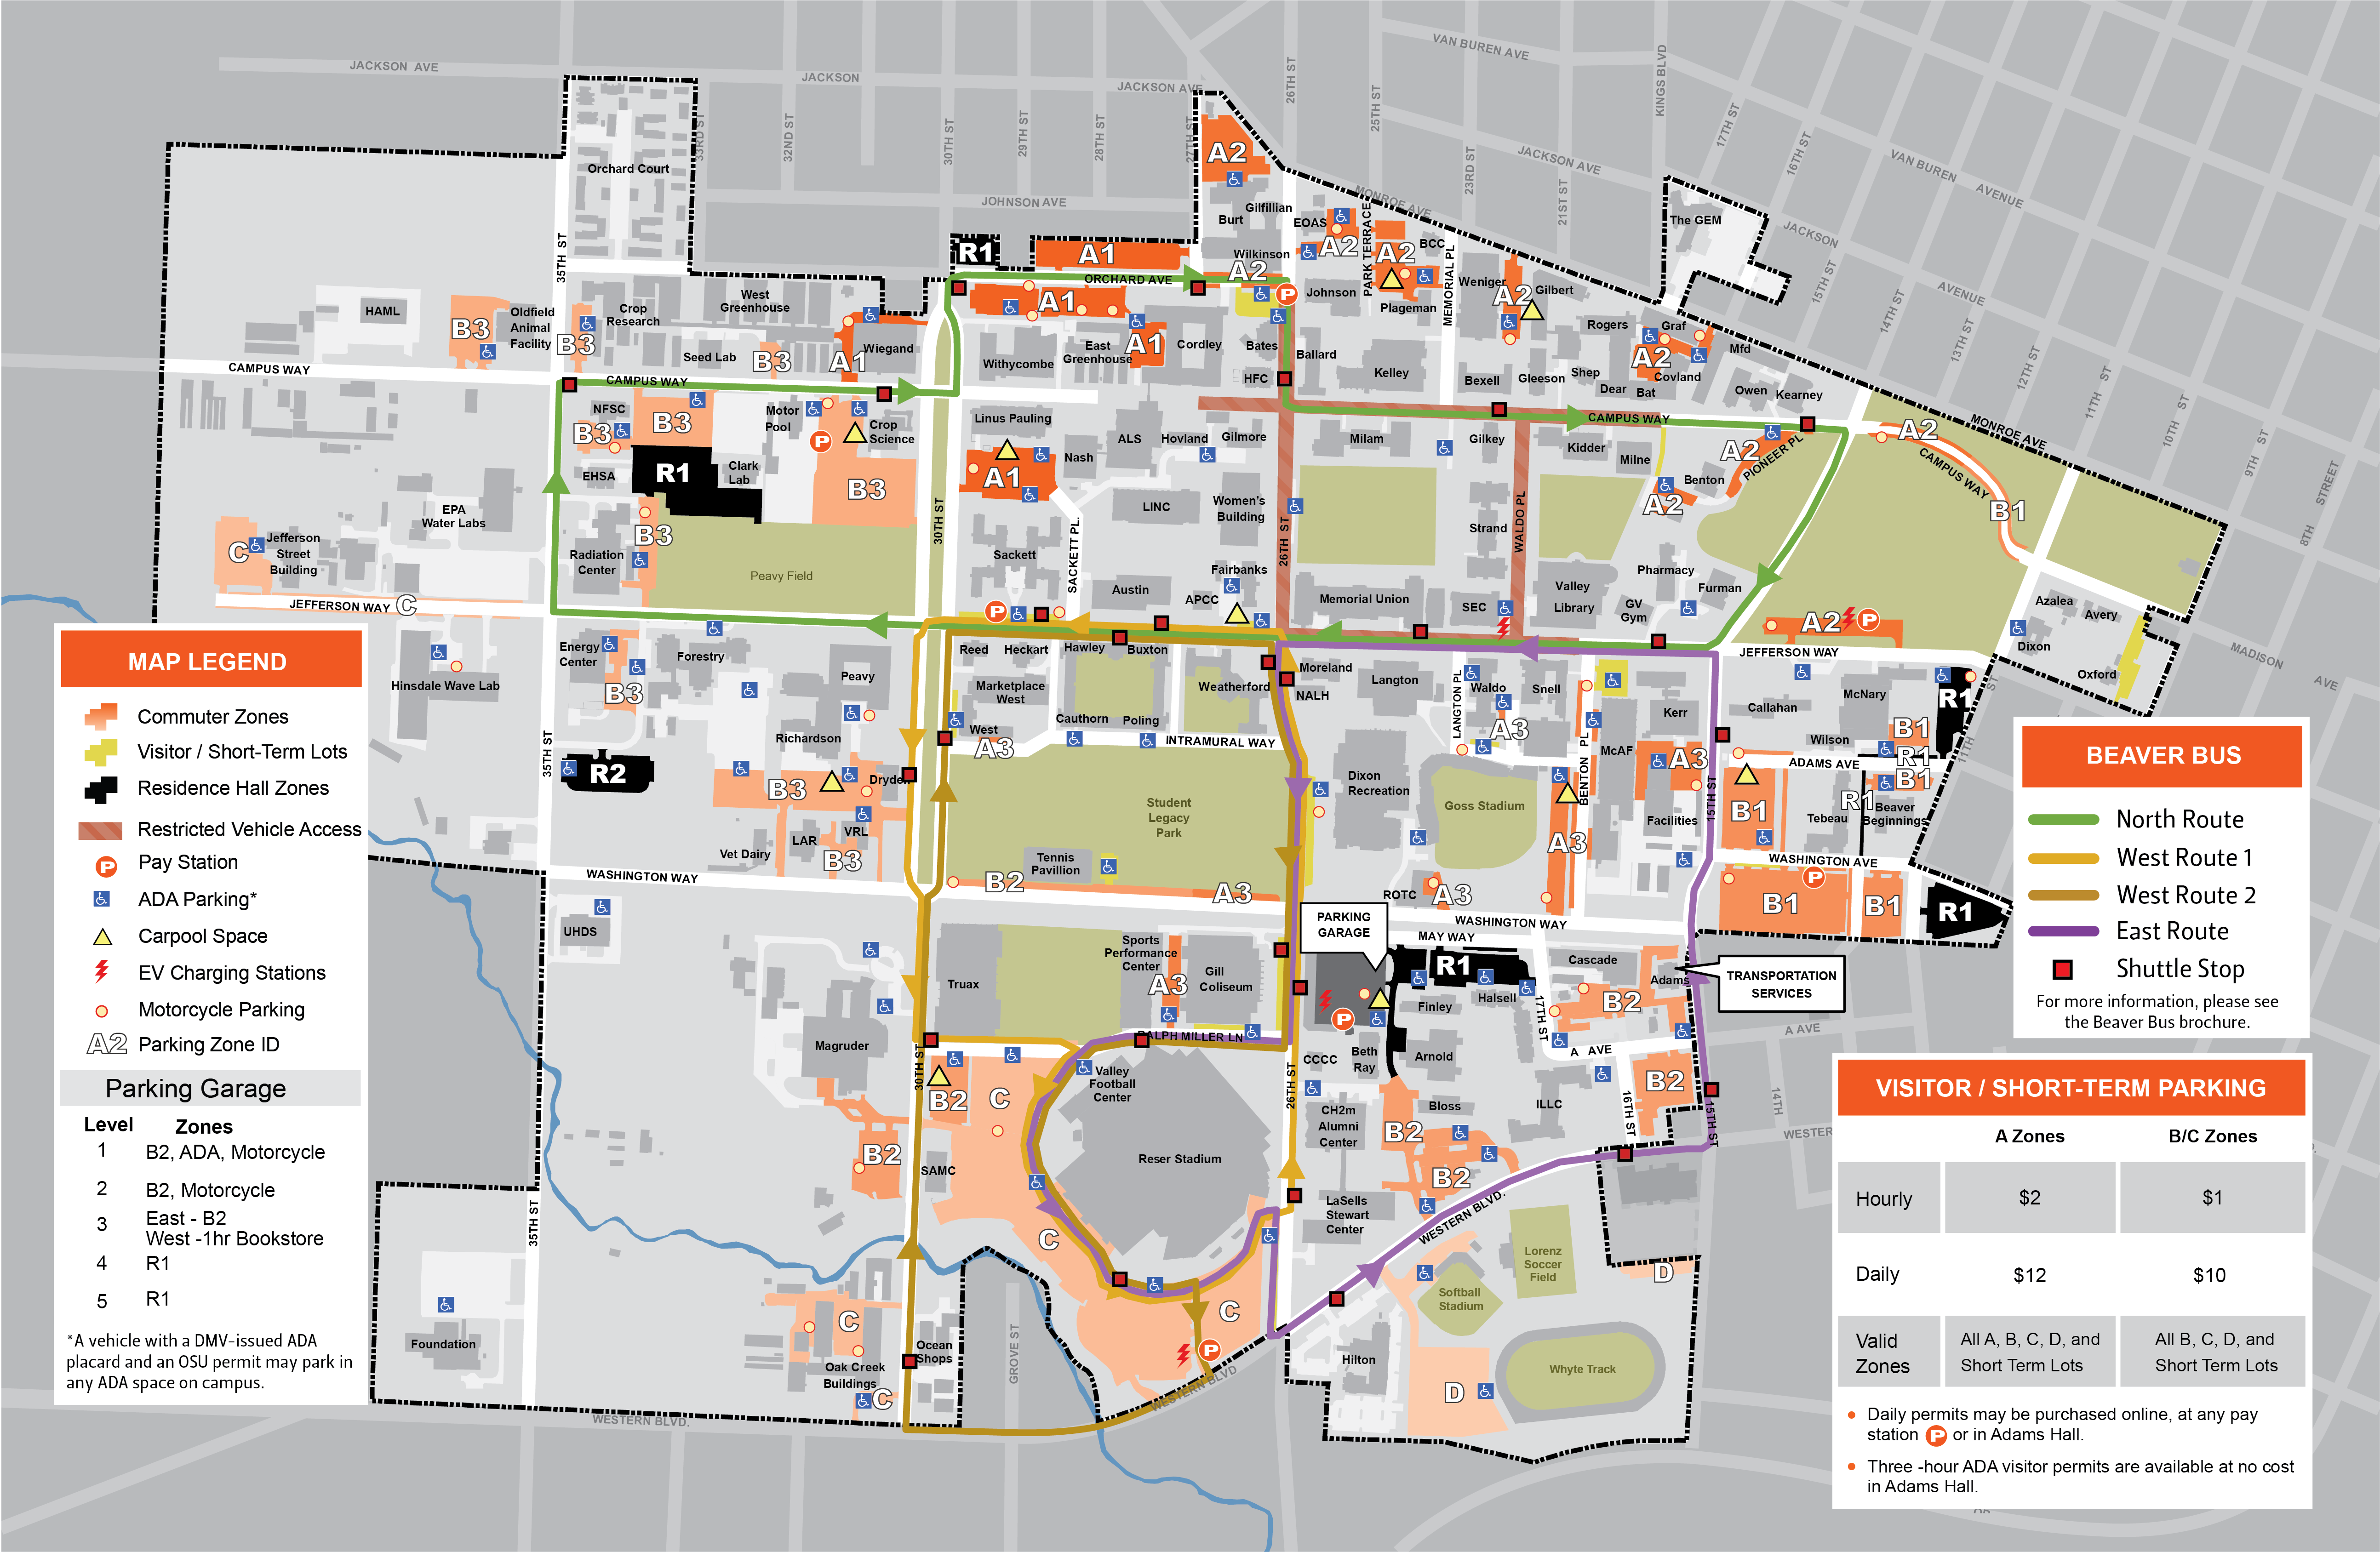 2017-2018_parking_mapv2 San Go State University Parking Map on oregon state university map, montana state university campus map, university business center map, cta bus routes map, princeton university map, university beach map, university library map, chapman university map, university school map, university police, ohio university campus map, mankato state university map, university heat map, auburn university map, university transit map,